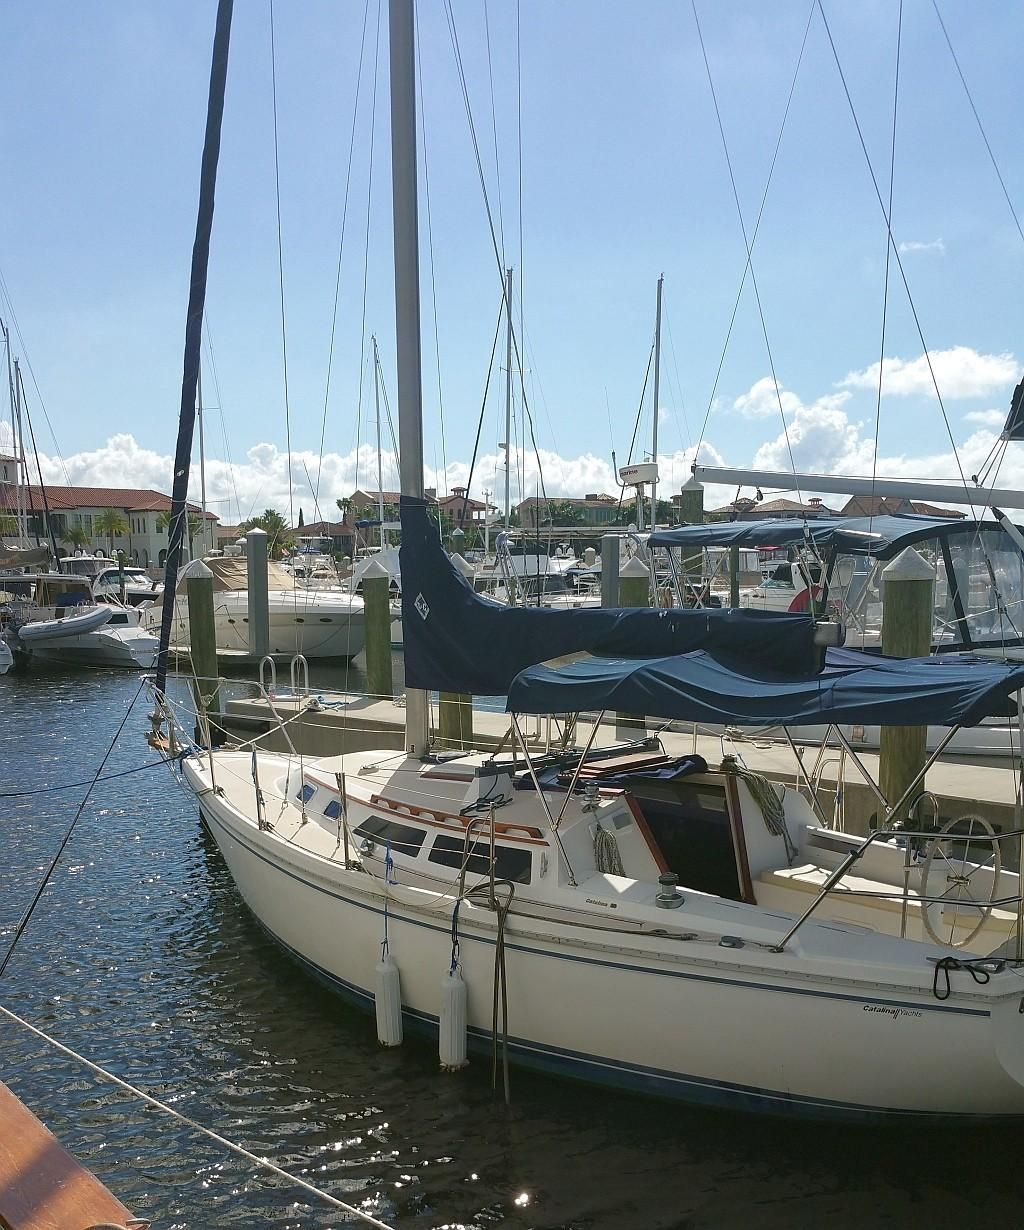 1988 Used Catalina 30' Sloop Cruiser Sailboat For Sale